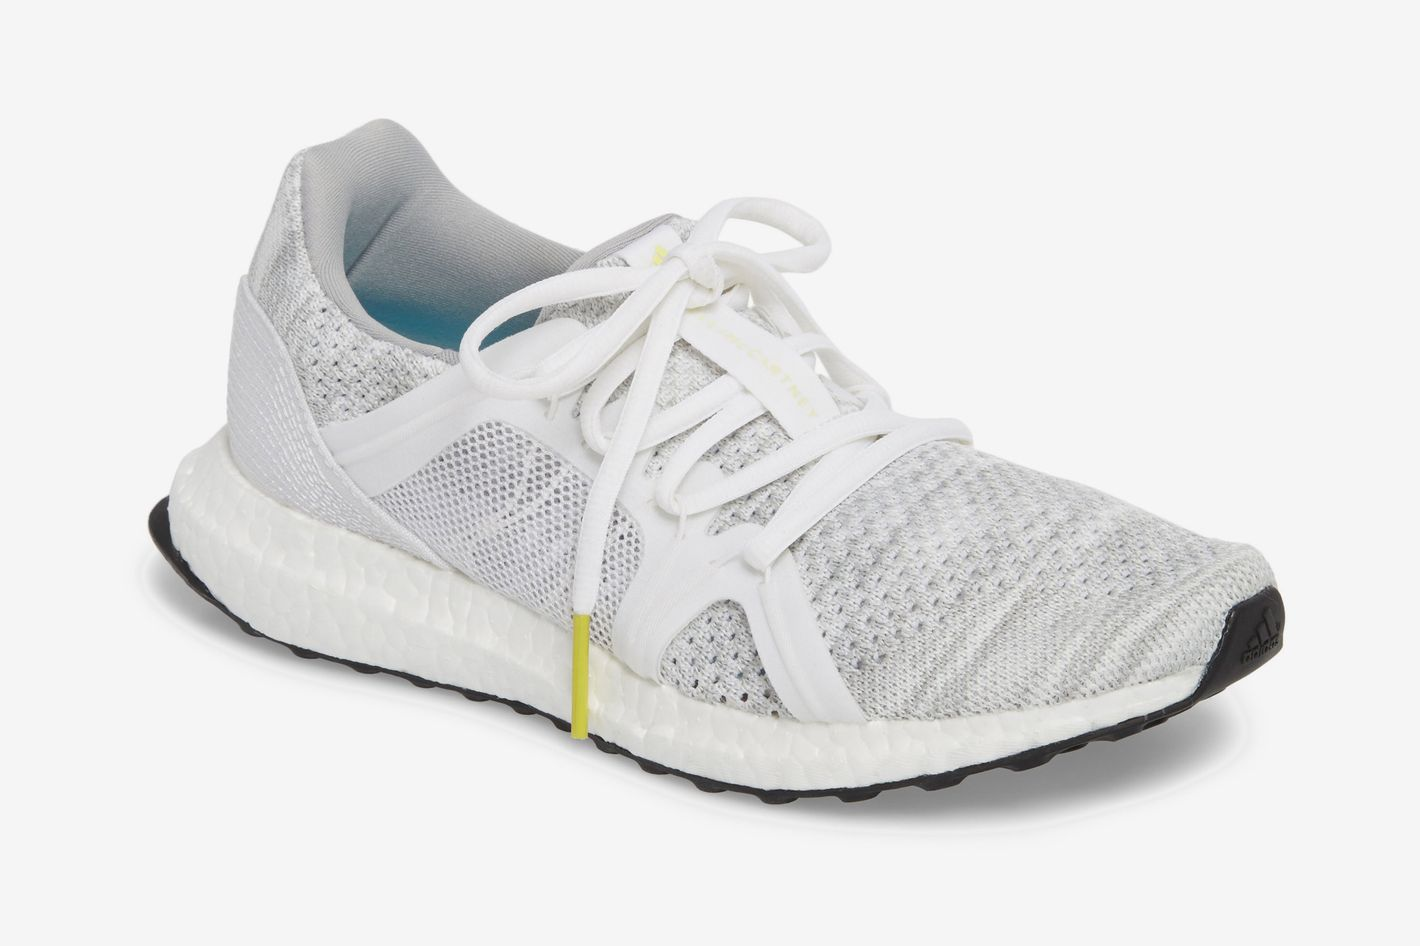 9ea8018d6952b Adidas Ultraboost x Parley Running Shoes at Nordstrom